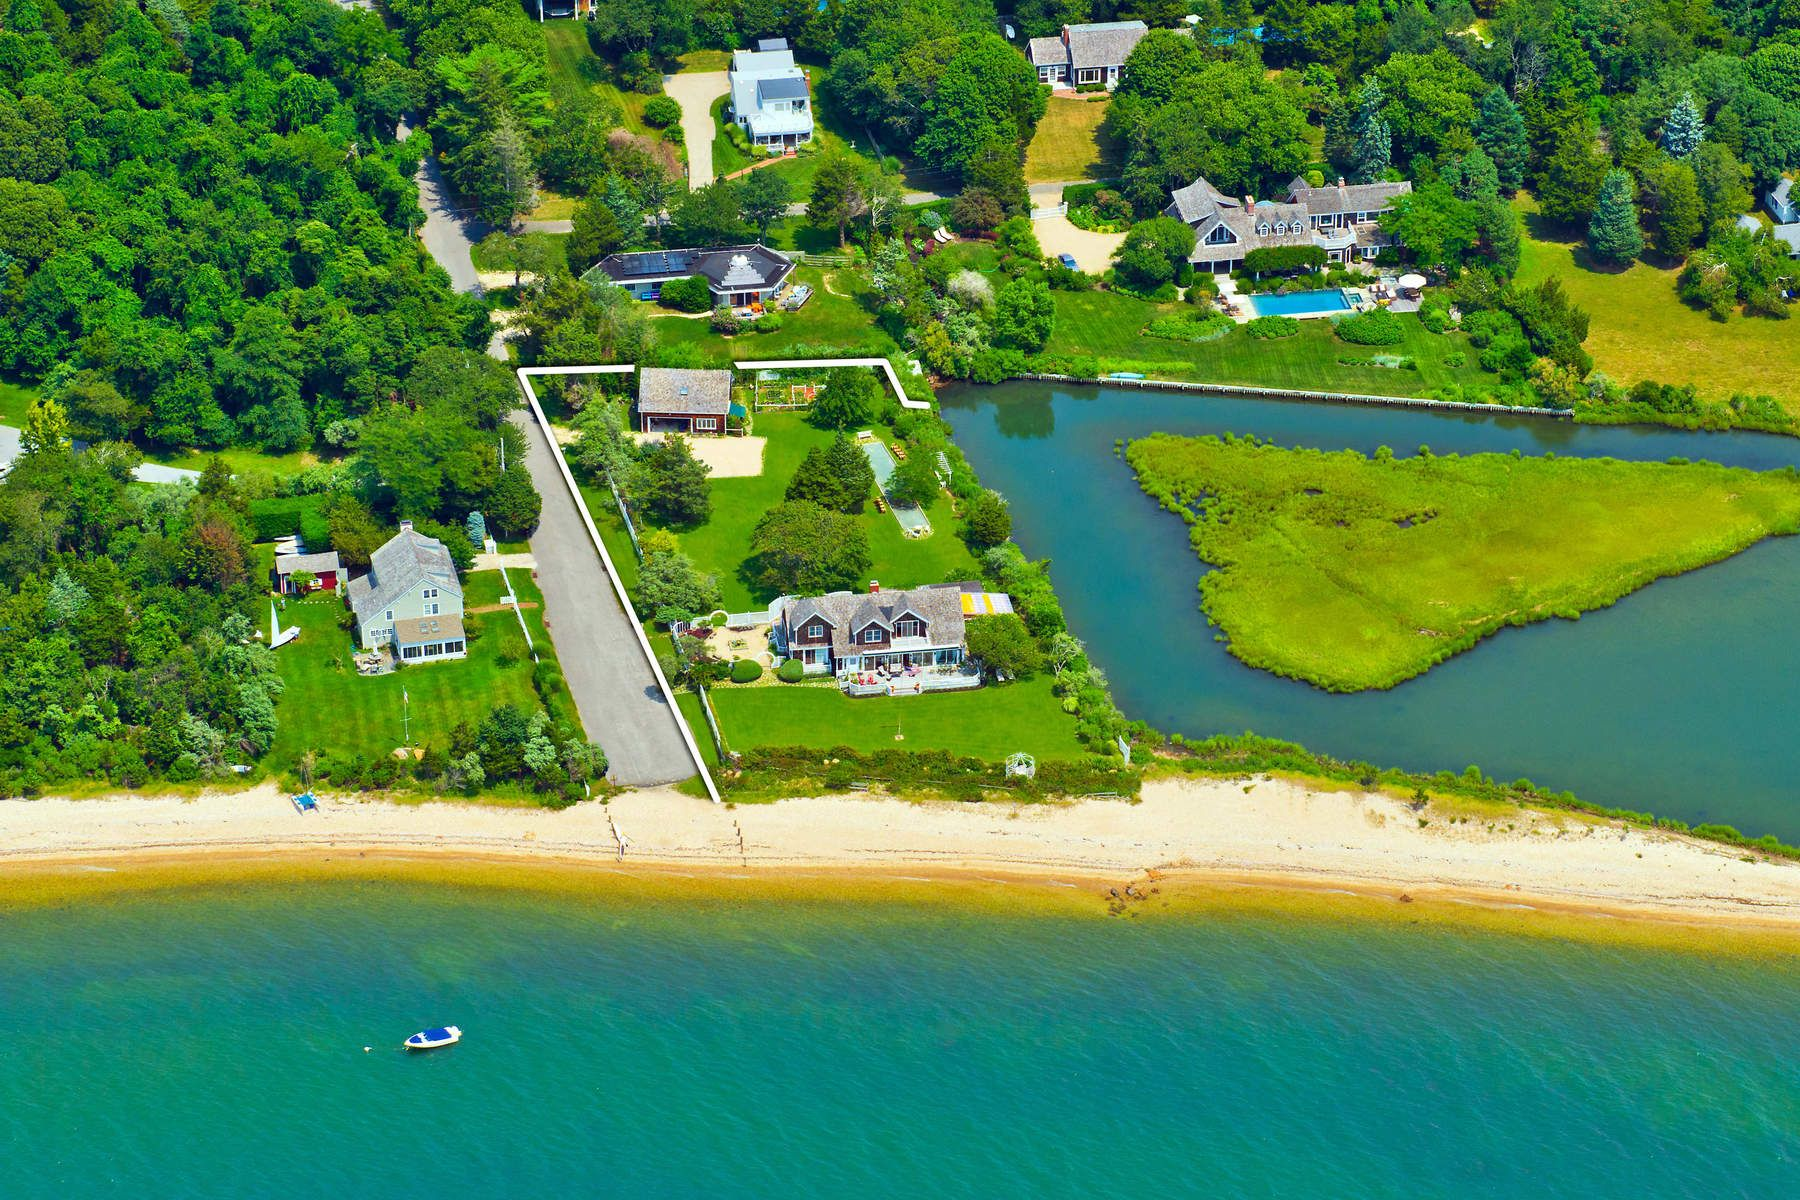 Single Family Homes für Verkauf beim Sag Harbor/North Haven Waterfront 121 Sunset Beach Road, Sag Harbor, New York 11963 Vereinigte Staaten